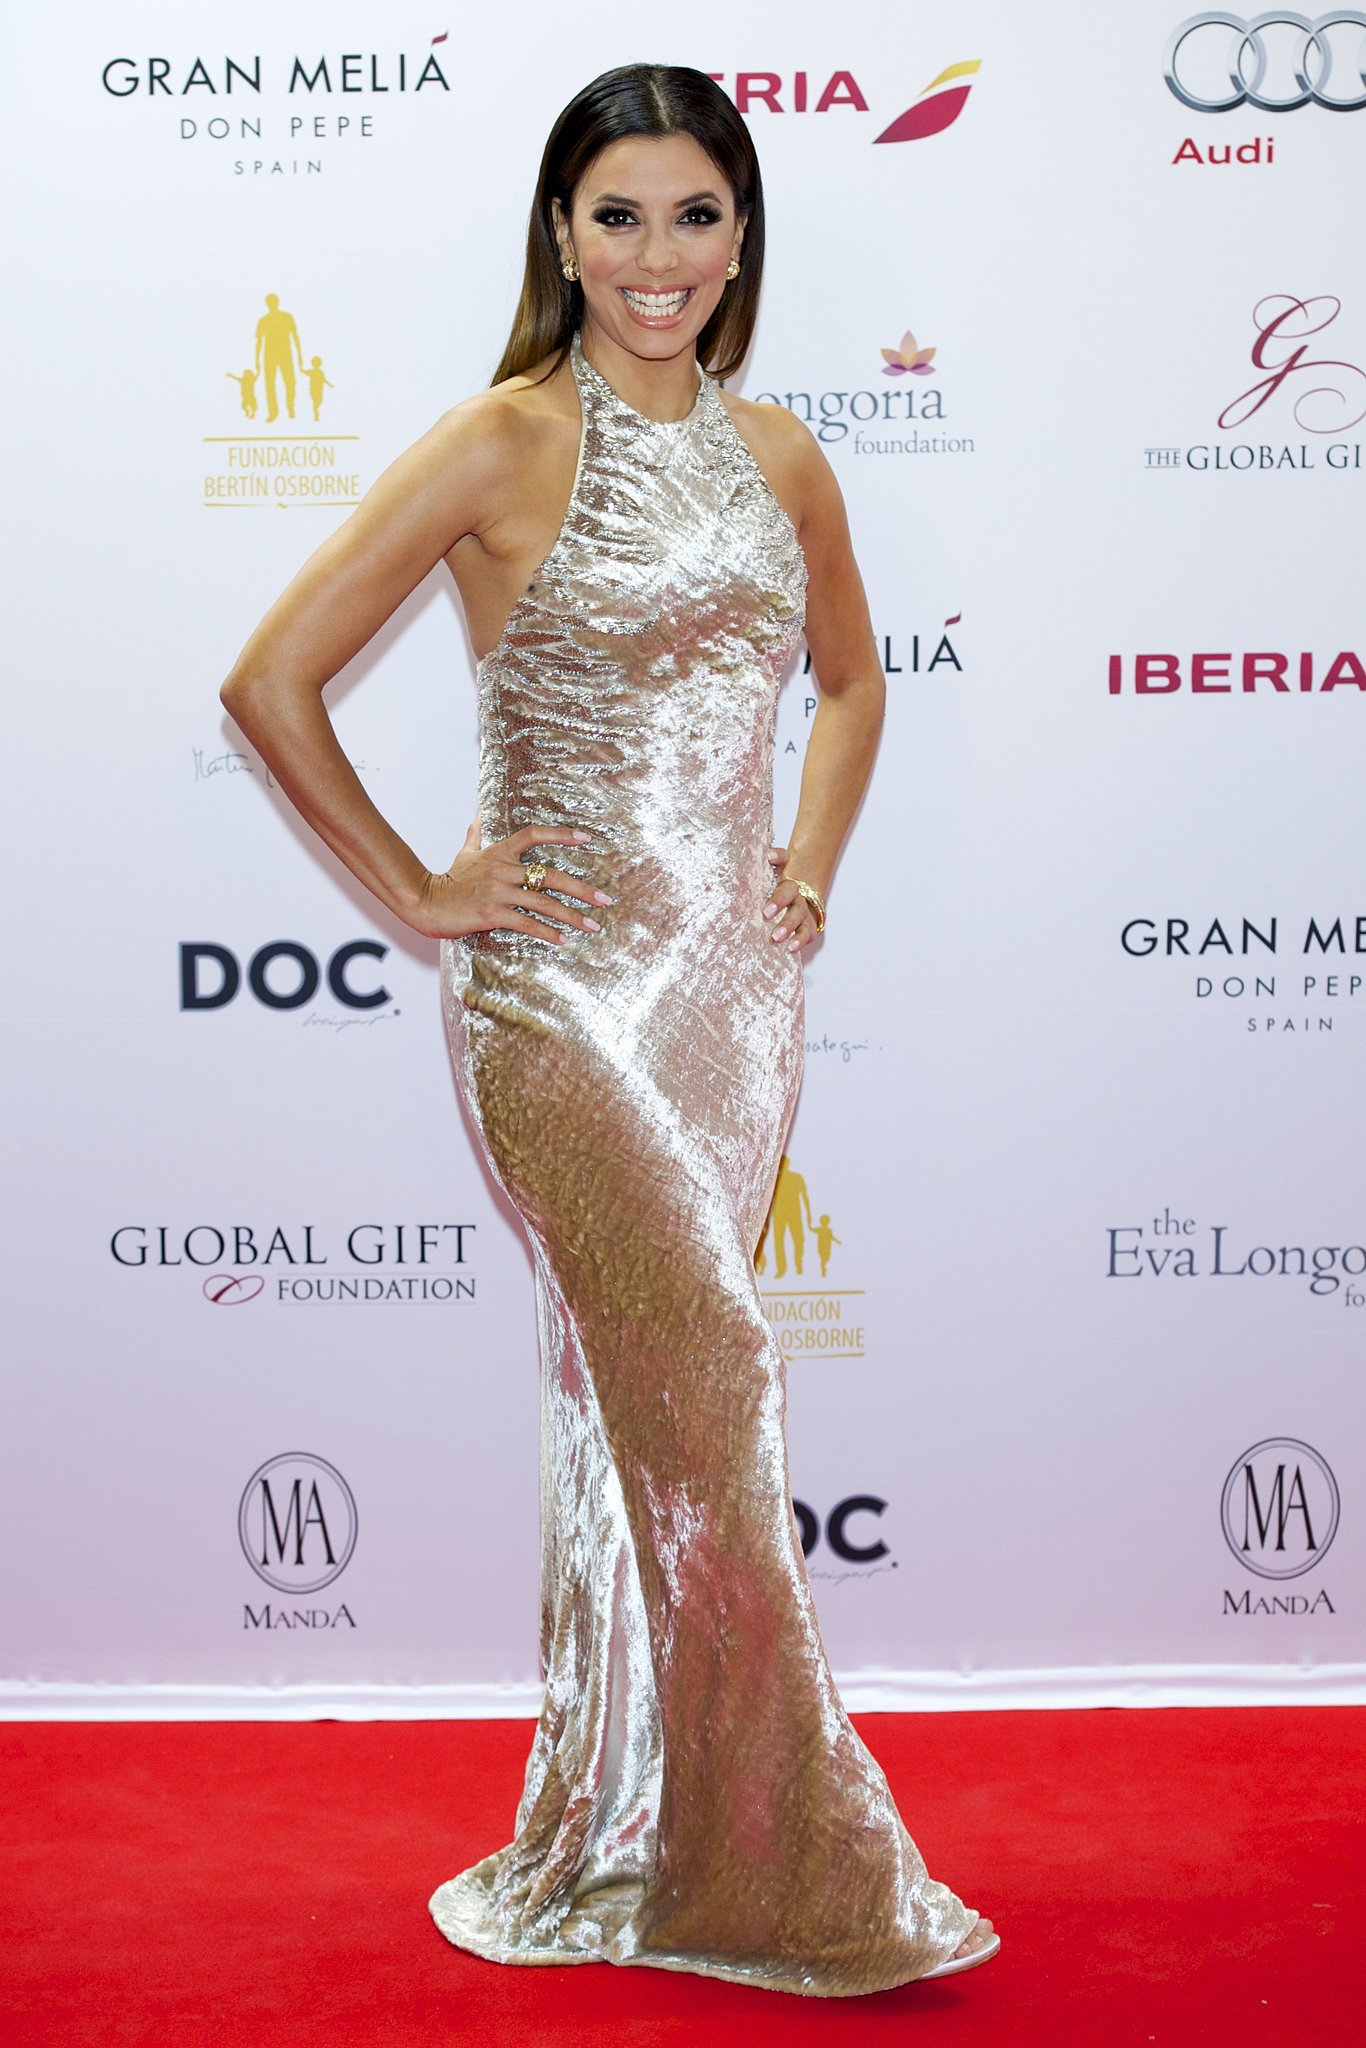 Eva Longoria looked glam at the Global Gift Gala red carpet in Marbella, Spain, on Sunday.